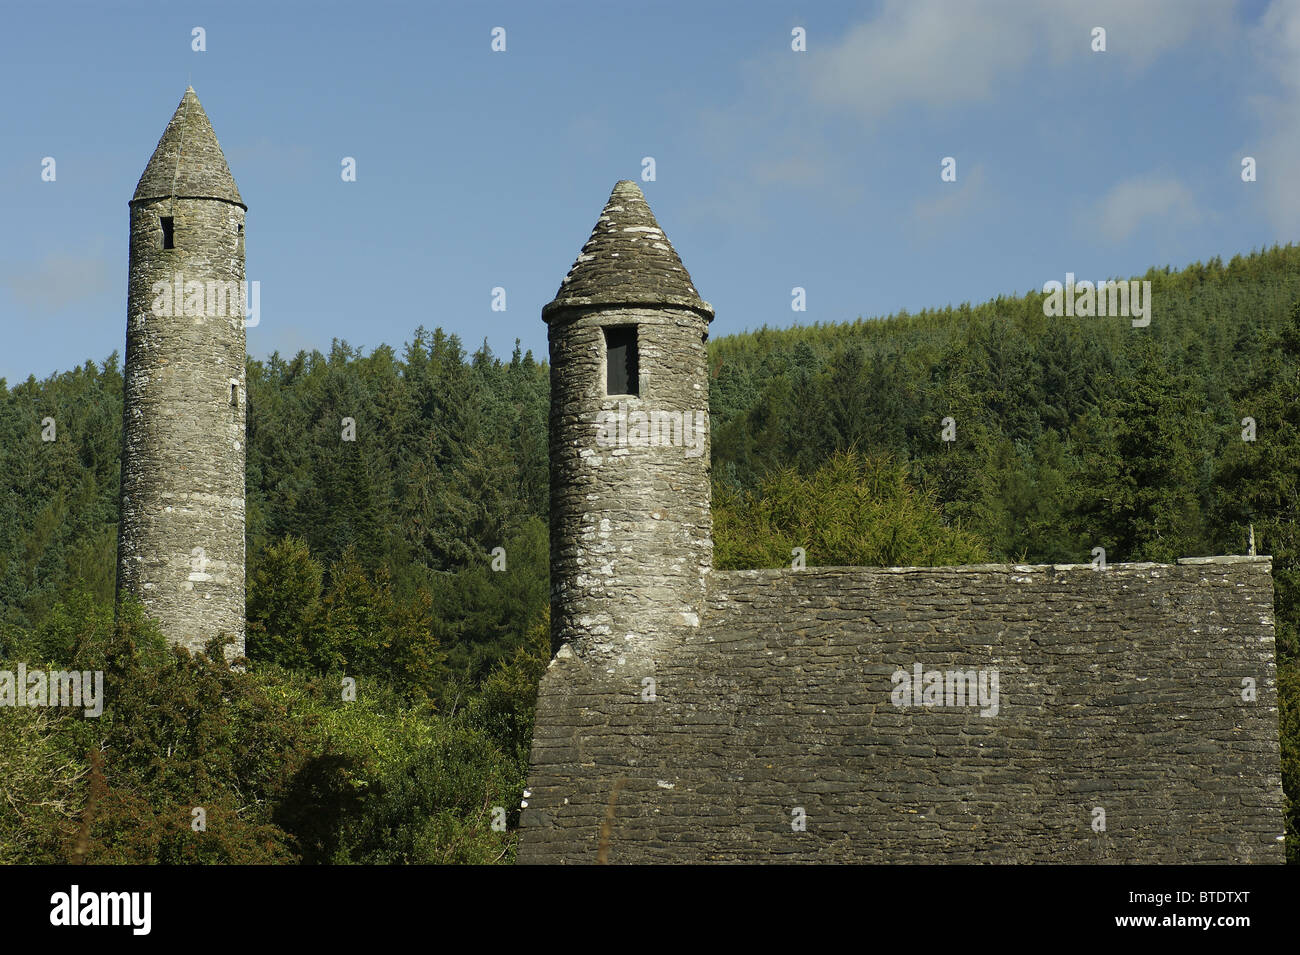 County Wicklow Monuments Stock Photos & County Wicklow Monuments ...